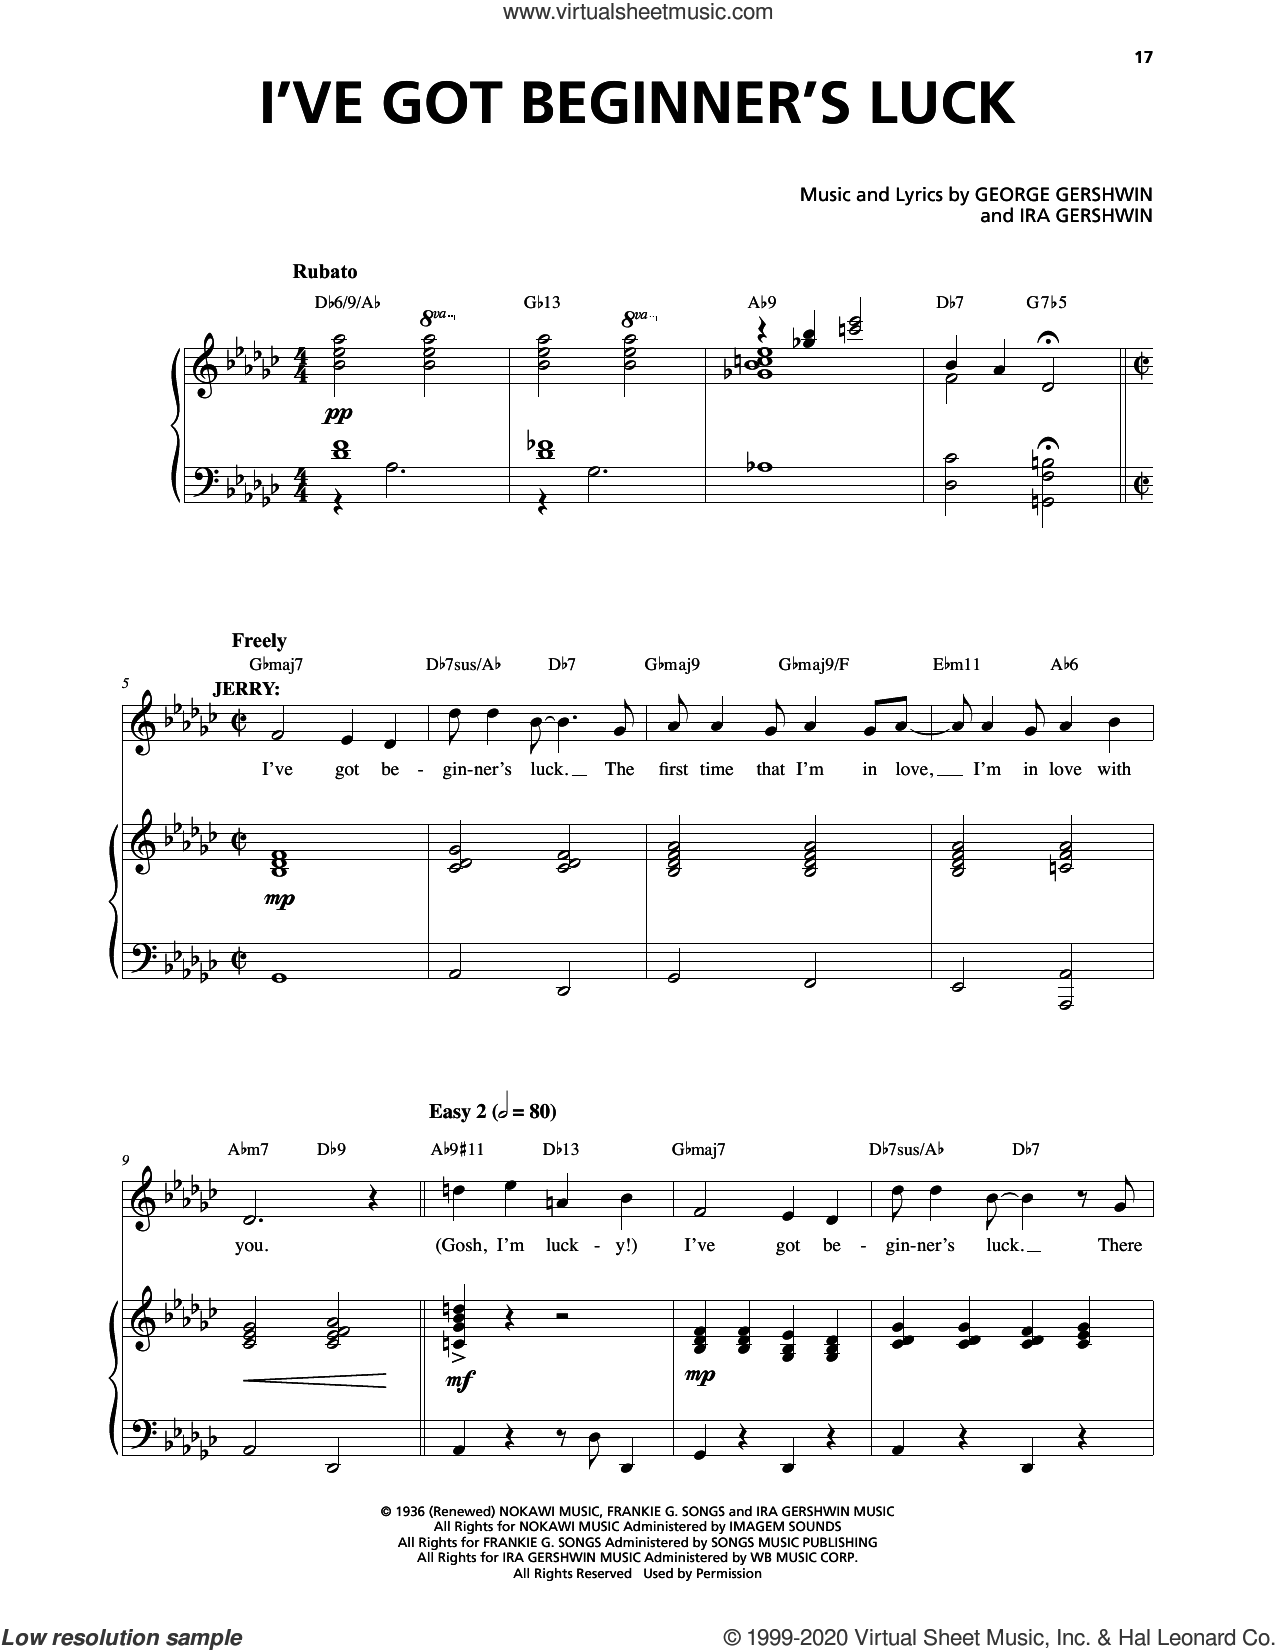 I've Got Beginner's Luck (from An American In Paris) sheet music for voice and piano by George Gershwin, George Gershwin & Ira Gershwin and Ira Gershwin, intermediate skill level